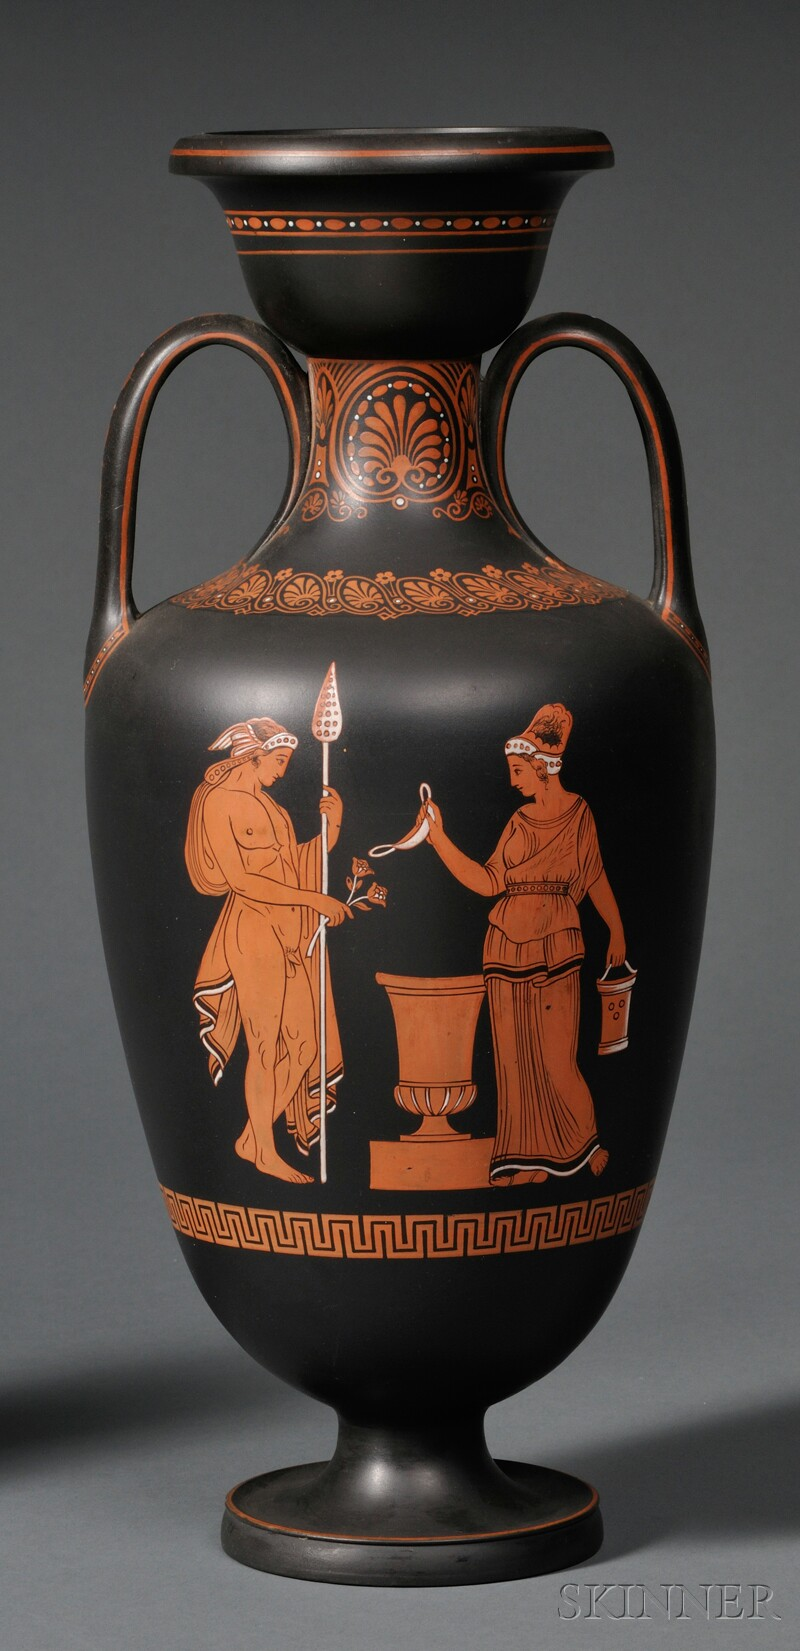 Wedgwood Encaustic-decorated Black Basalt Vase